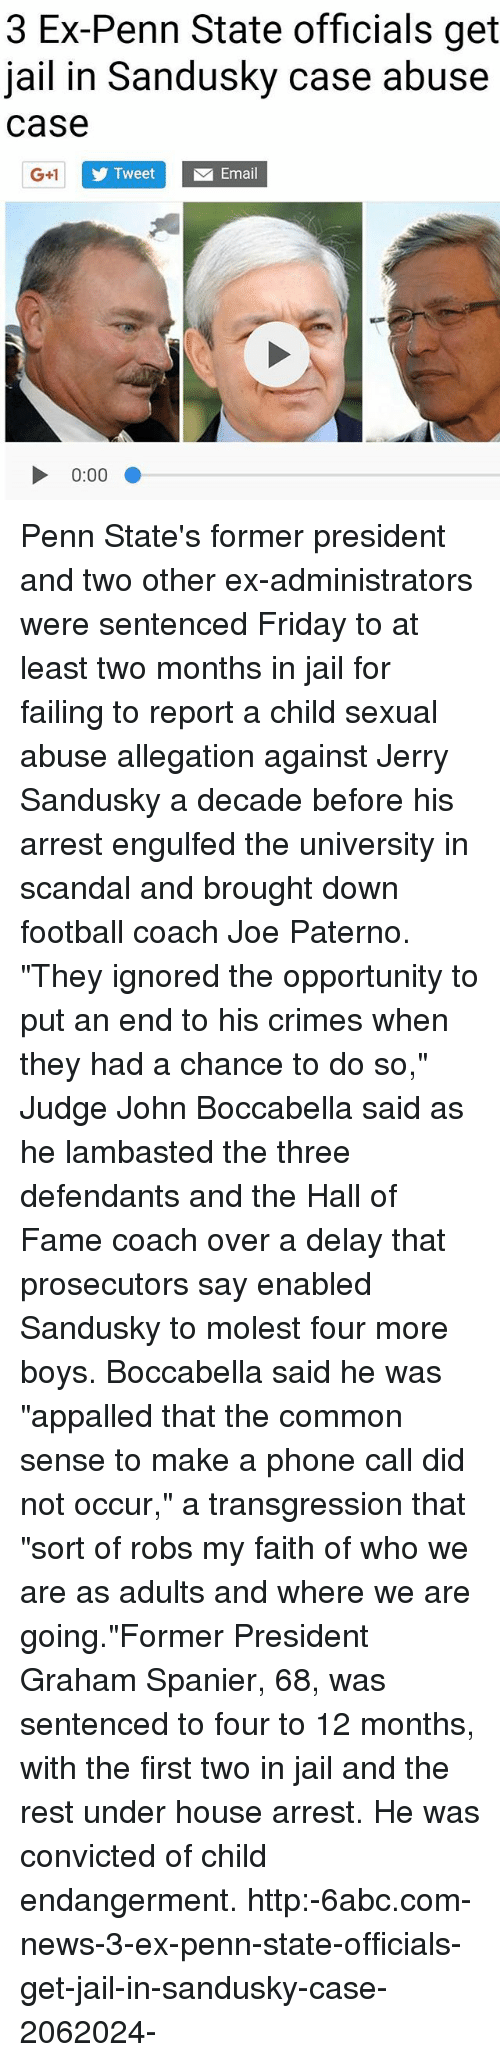 """Jerry Sandusky: 3 Ex-Penn State officials get  jail in Sandusky case abuse  case  G+1  TweetEmail  0:00 Penn State's former president and two other ex-administrators were sentenced Friday to at least two months in jail for failing to report a child sexual abuse allegation against Jerry Sandusky a decade before his arrest engulfed the university in scandal and brought down football coach Joe Paterno. """"They ignored the opportunity to put an end to his crimes when they had a chance to do so,"""" Judge John Boccabella said as he lambasted the three defendants and the Hall of Fame coach over a delay that prosecutors say enabled Sandusky to molest four more boys. Boccabella said he was """"appalled that the common sense to make a phone call did not occur,"""" a transgression that """"sort of robs my faith of who we are as adults and where we are going.""""Former President Graham Spanier, 68, was sentenced to four to 12 months, with the first two in jail and the rest under house arrest. He was convicted of child endangerment. http:-6abc.com-news-3-ex-penn-state-officials-get-jail-in-sandusky-case-2062024-"""